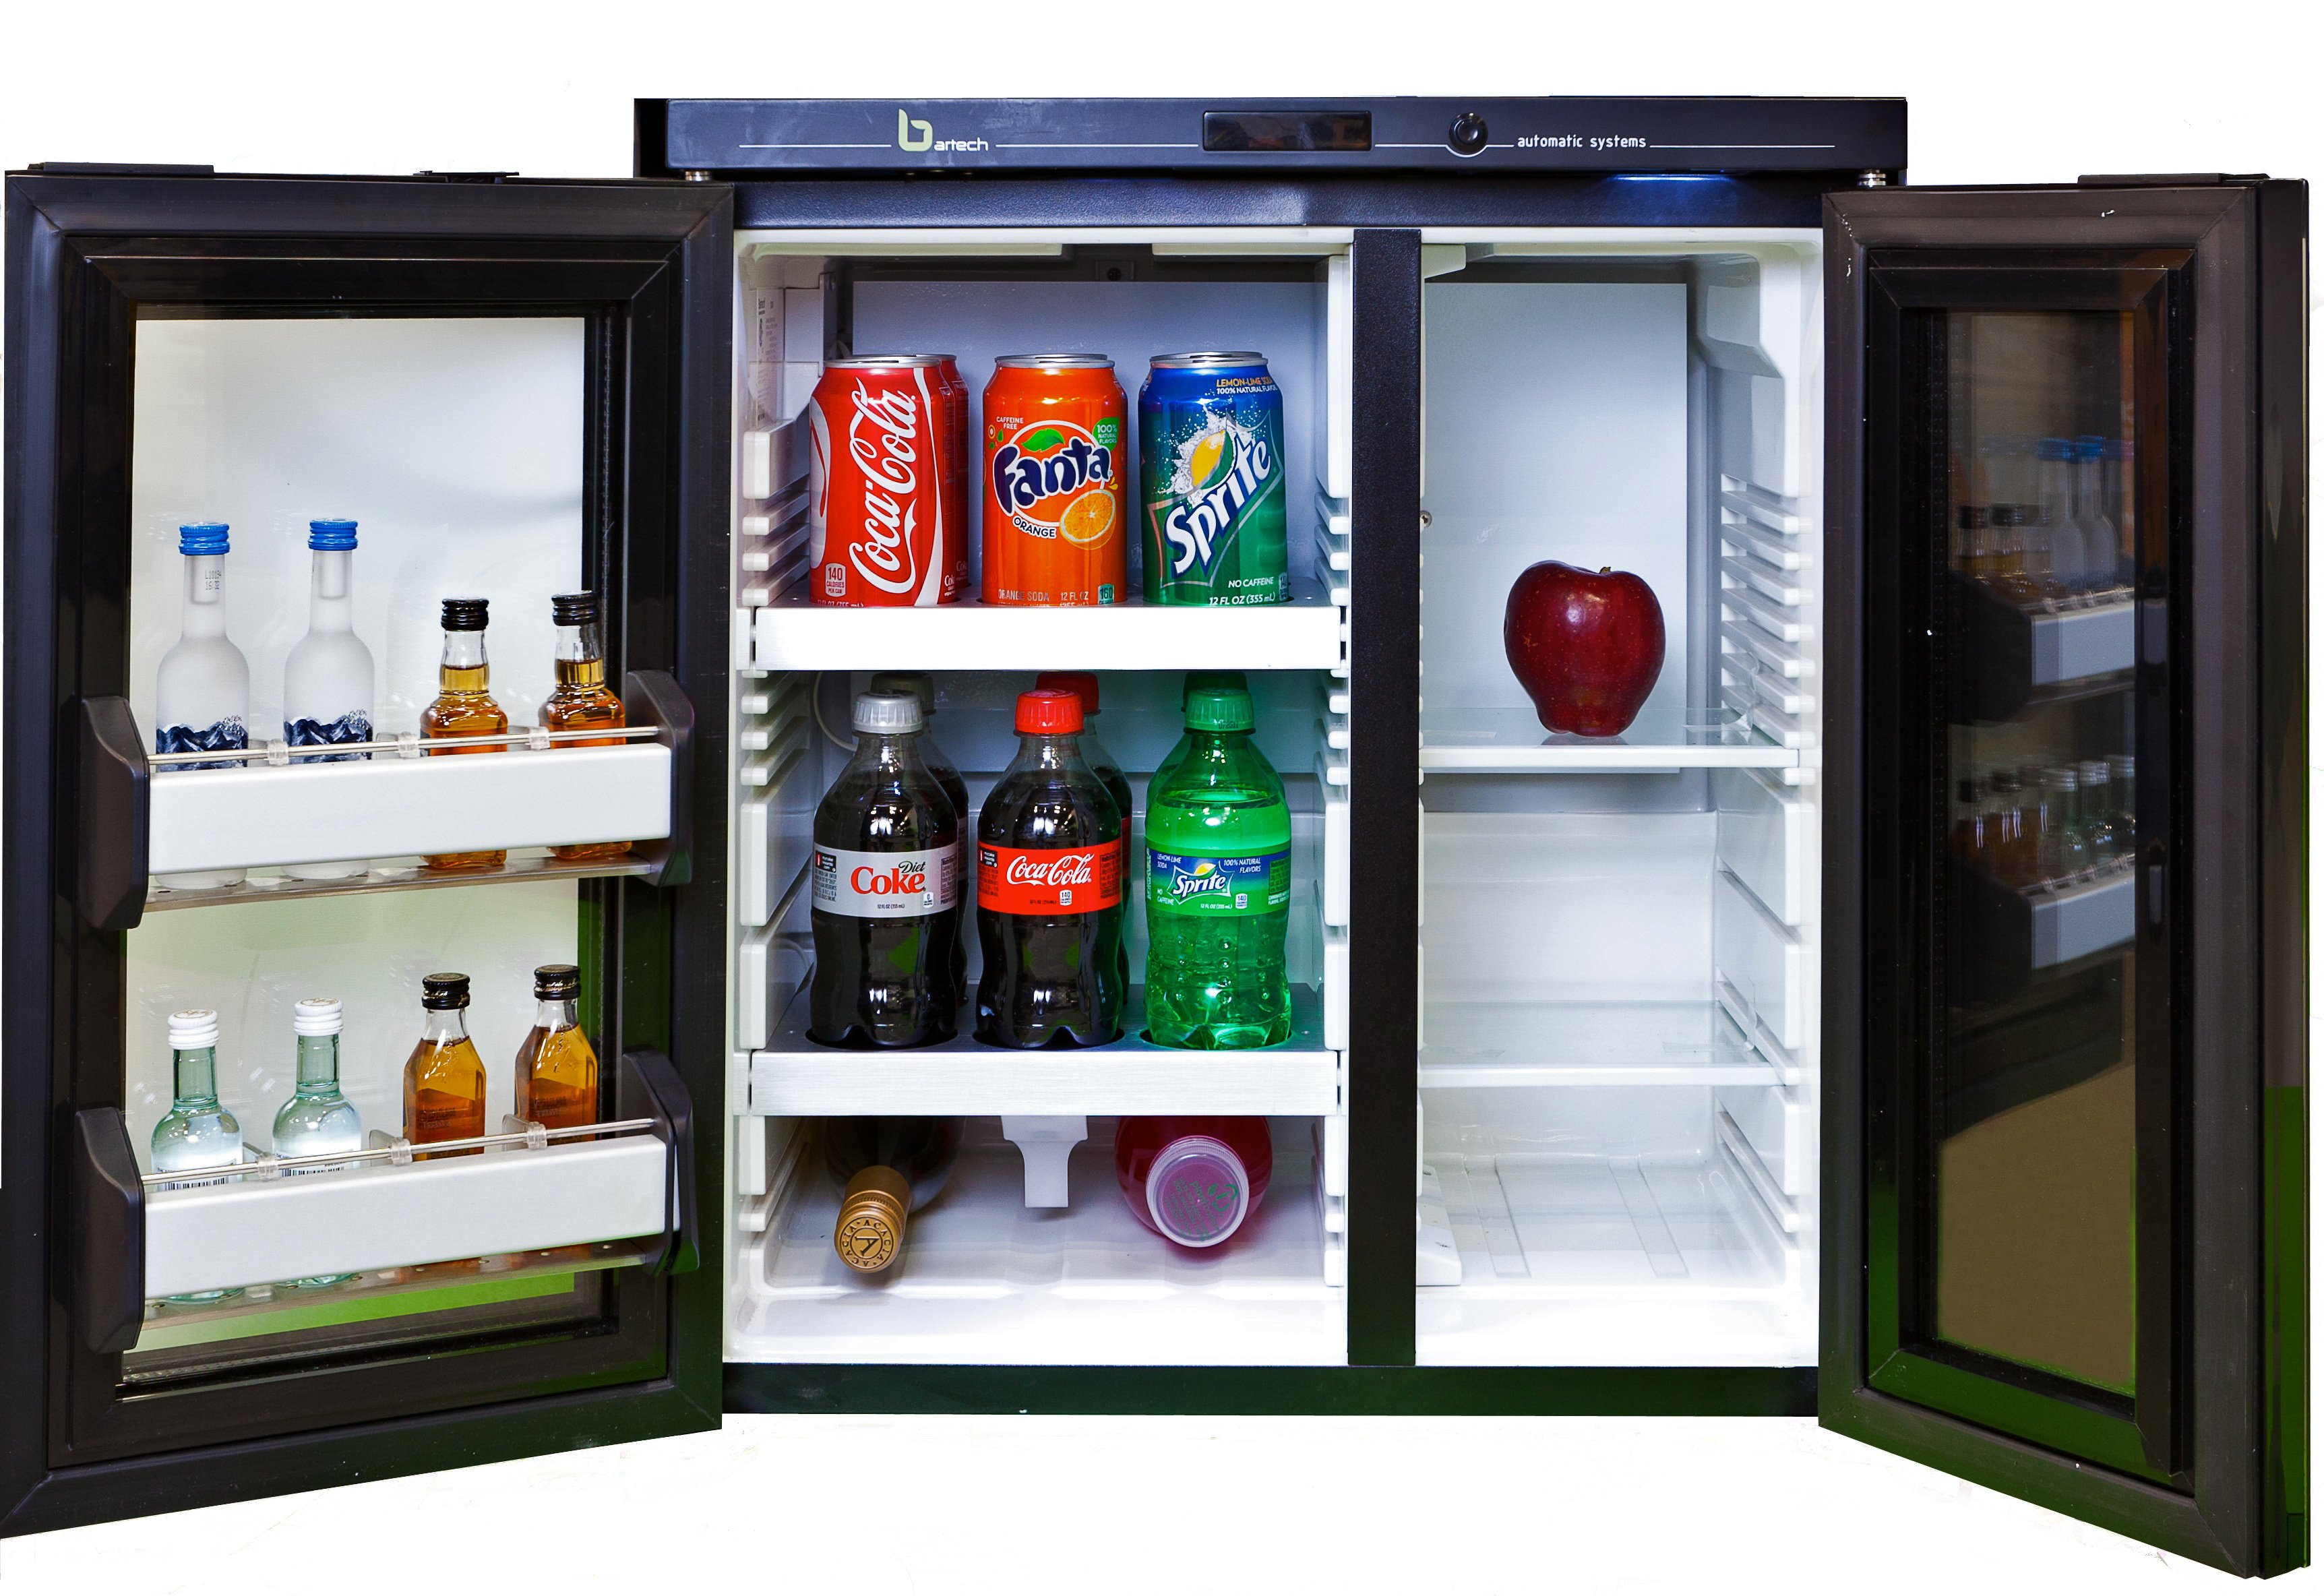 Bartech to Showcase Latest Innovations in Hotel Minibar Design and Technology at BDNY 2016